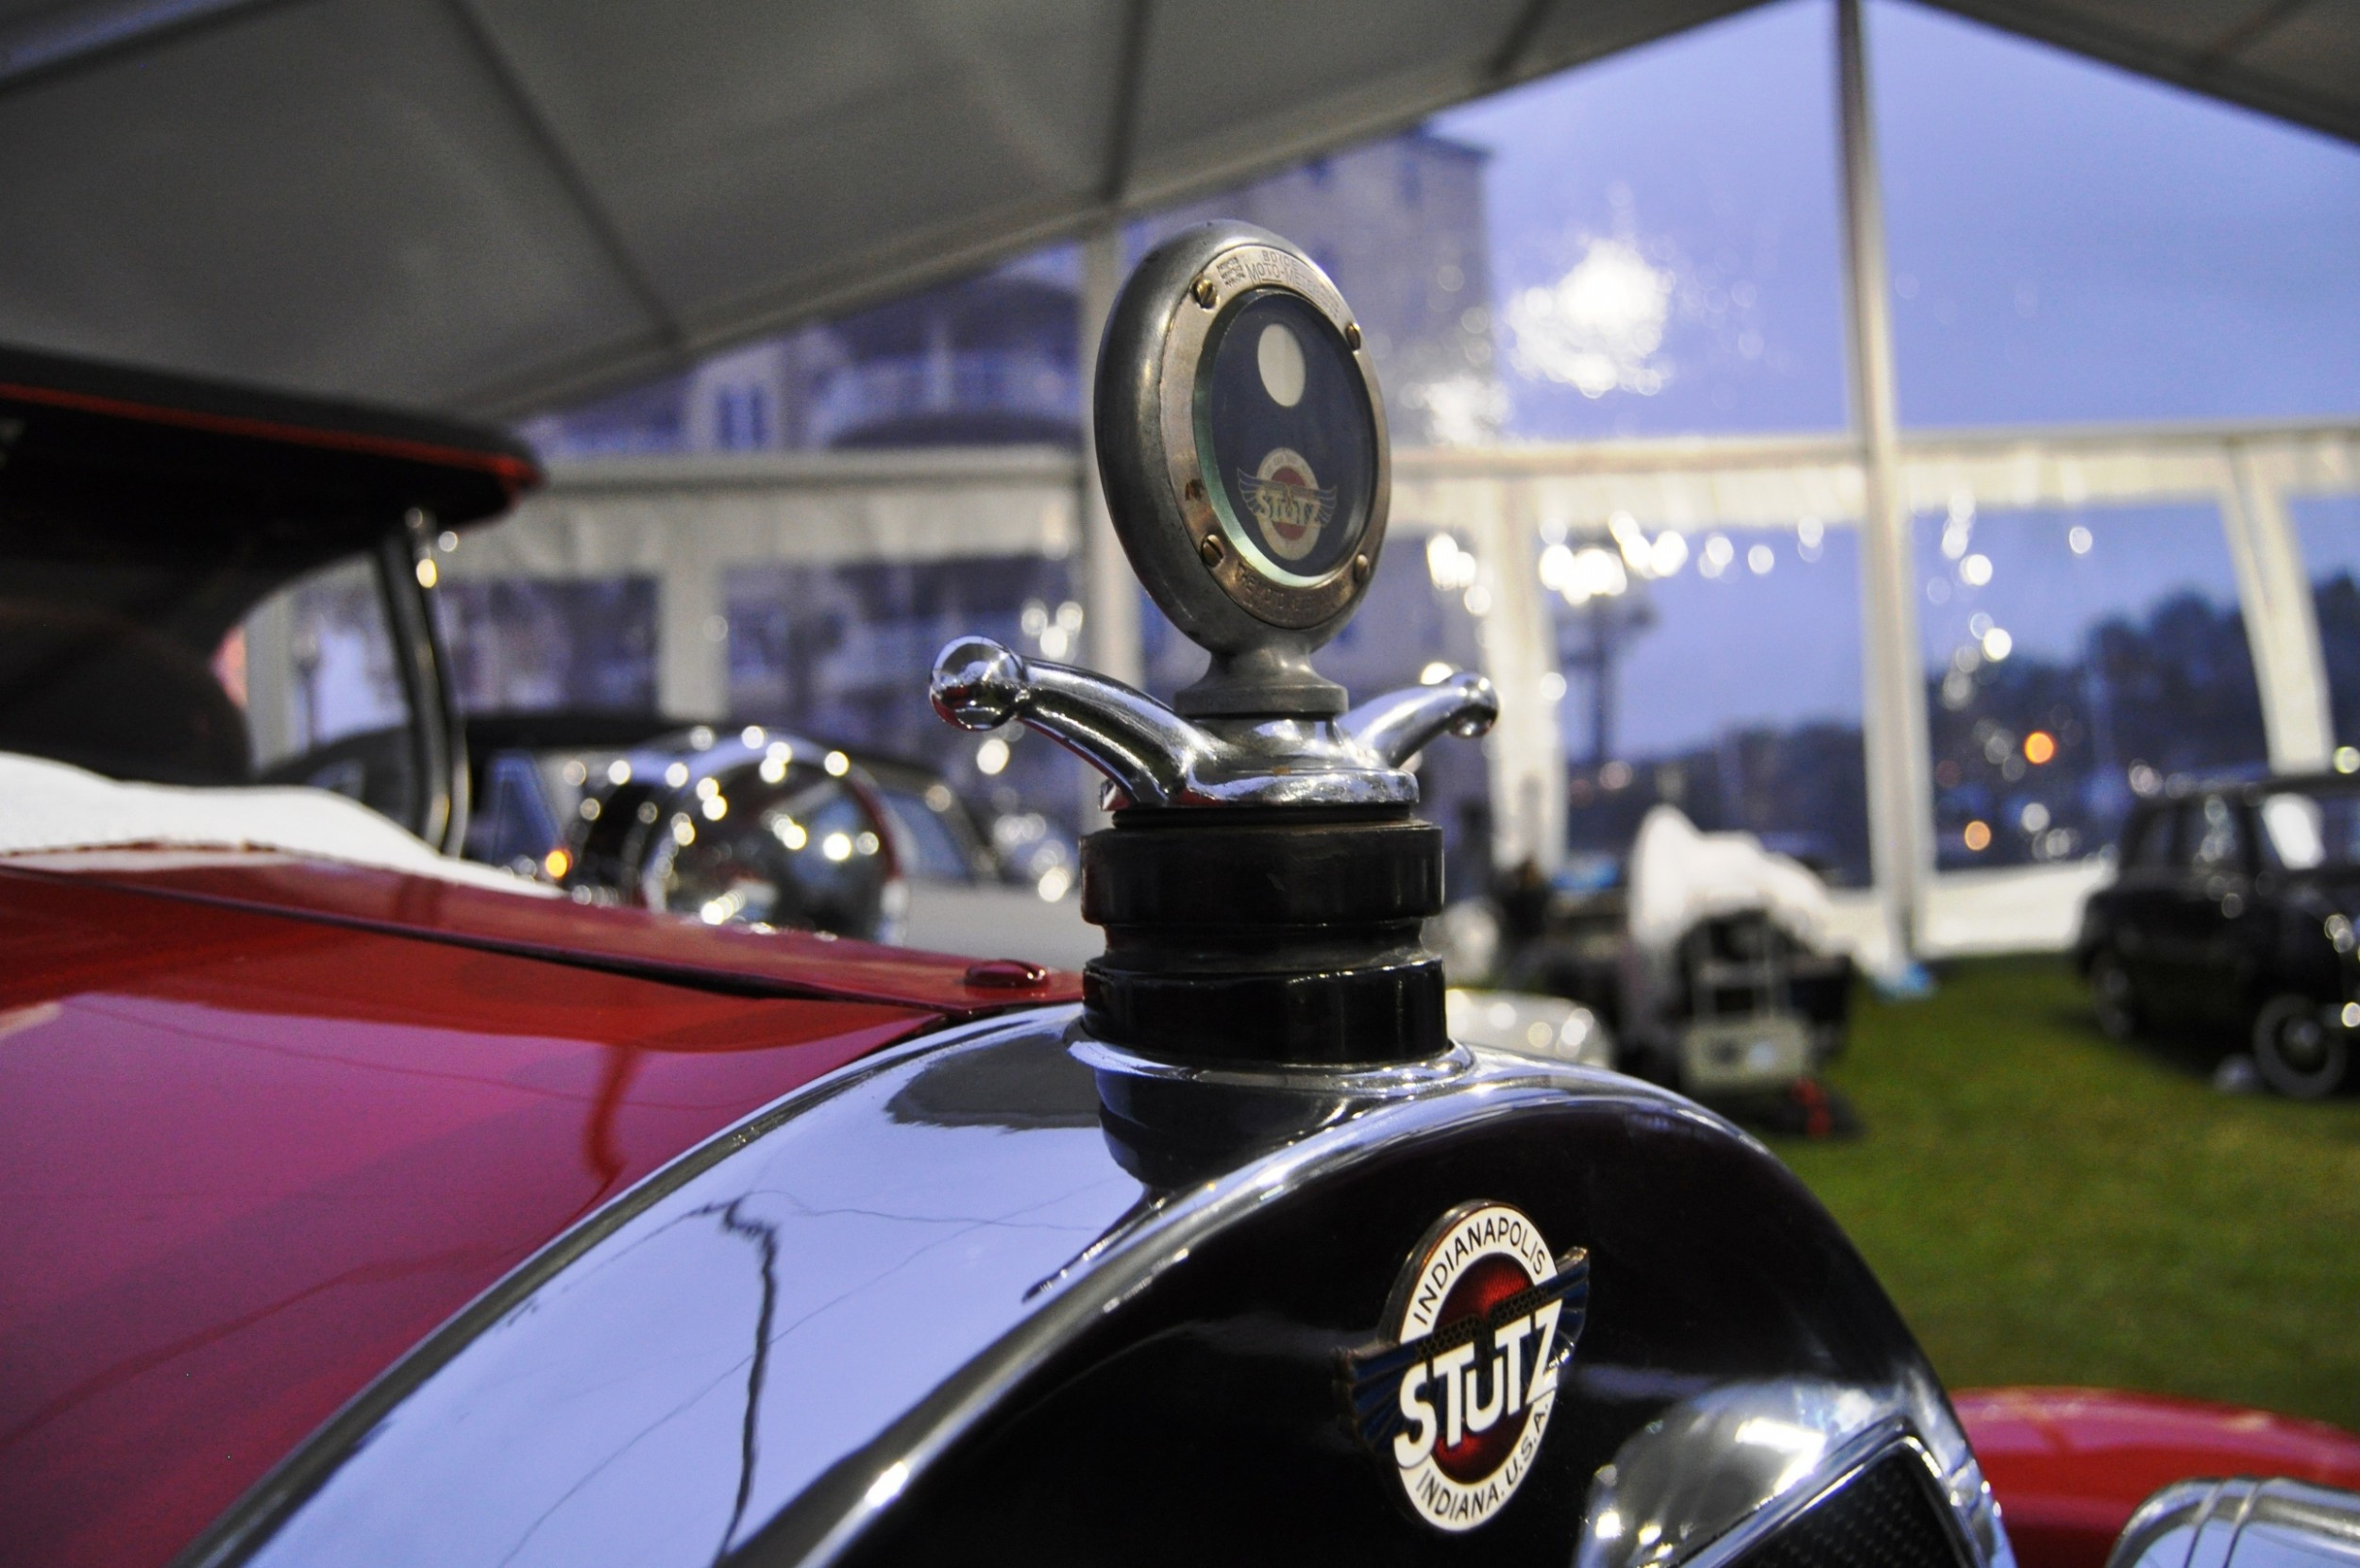 Coolest Vintage Hood Ornaments -- RM Auctions Amelia Island 2014 -- Pierce-Arrow, Cadillac, Stutz, Chrysler, Ford, Aston-Martin, Bentley and More 33